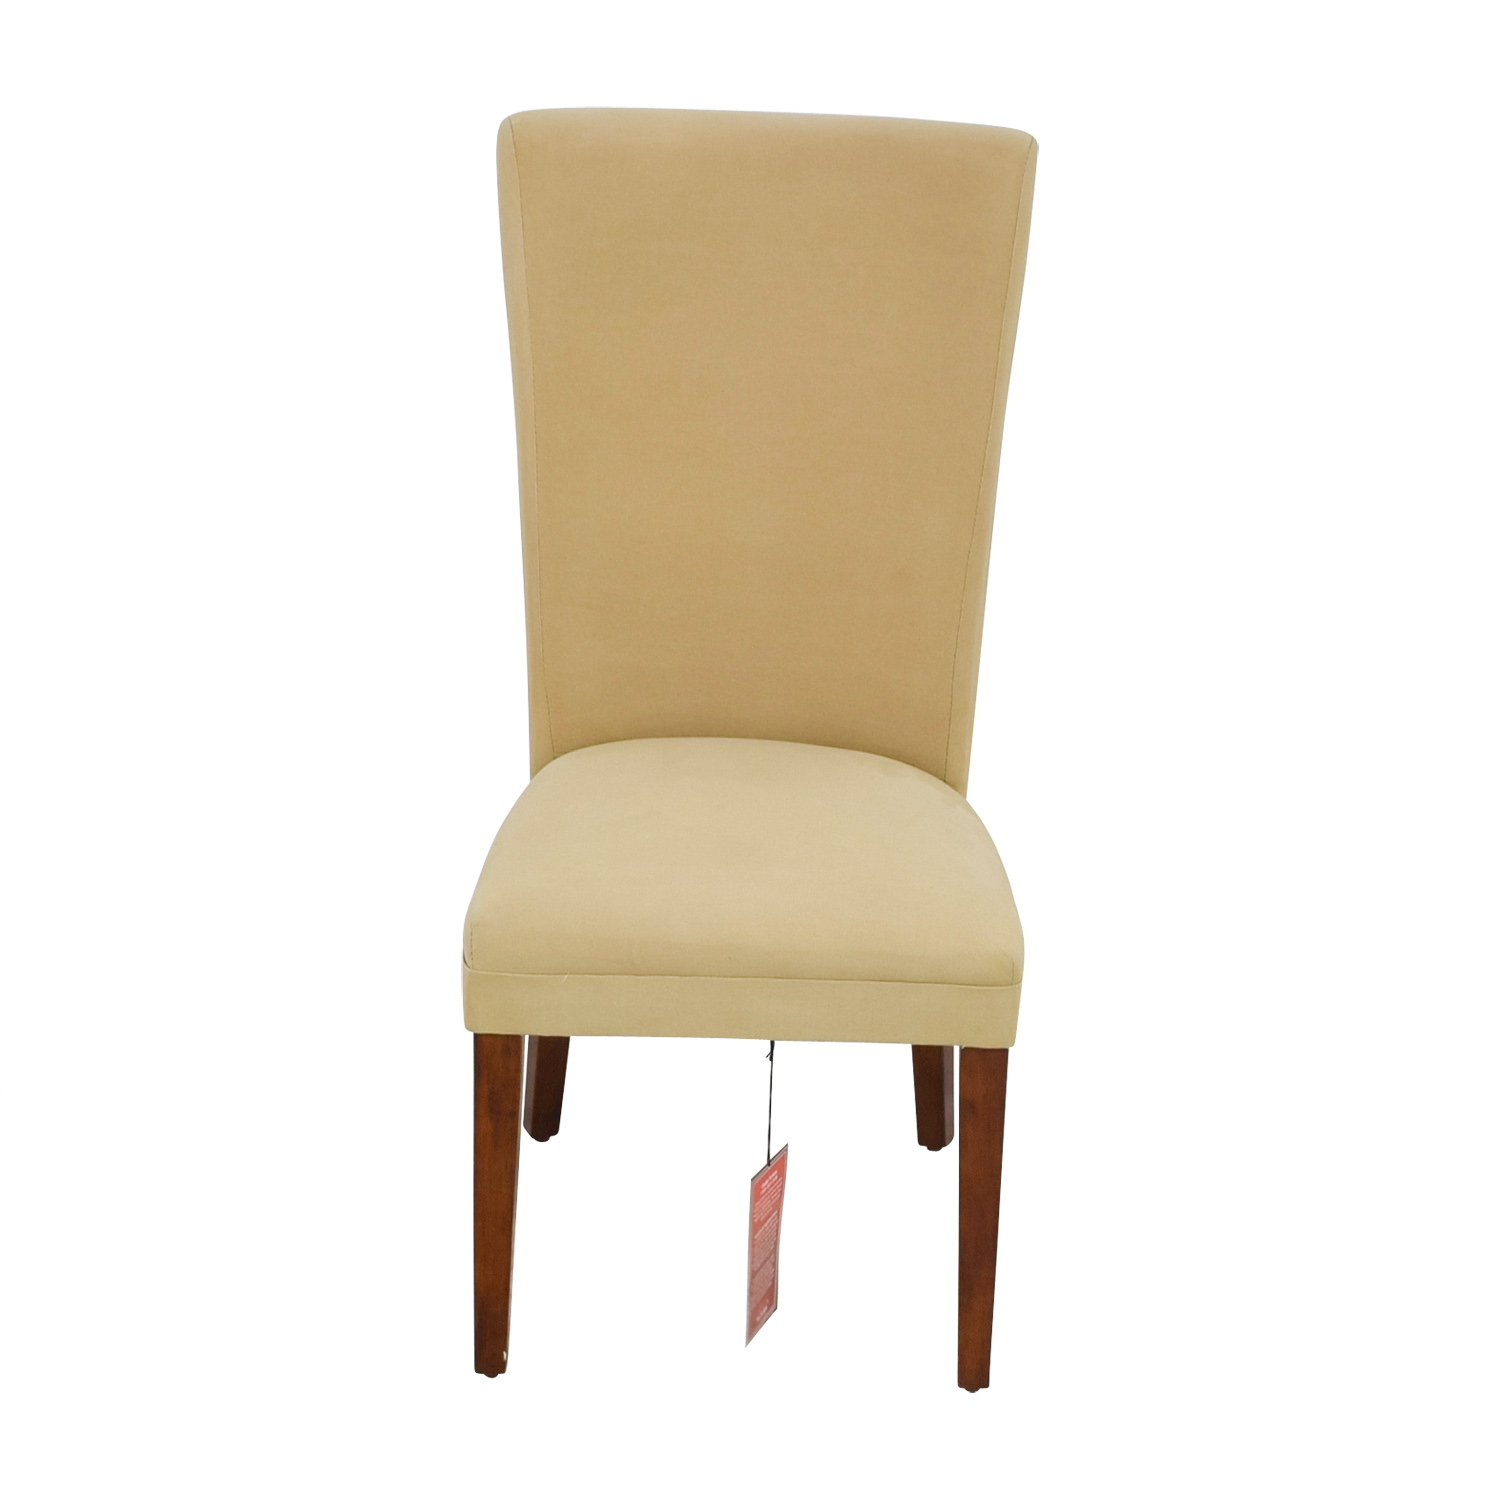 Coaster Coaster High Back Tan Upholstered Chair on sale